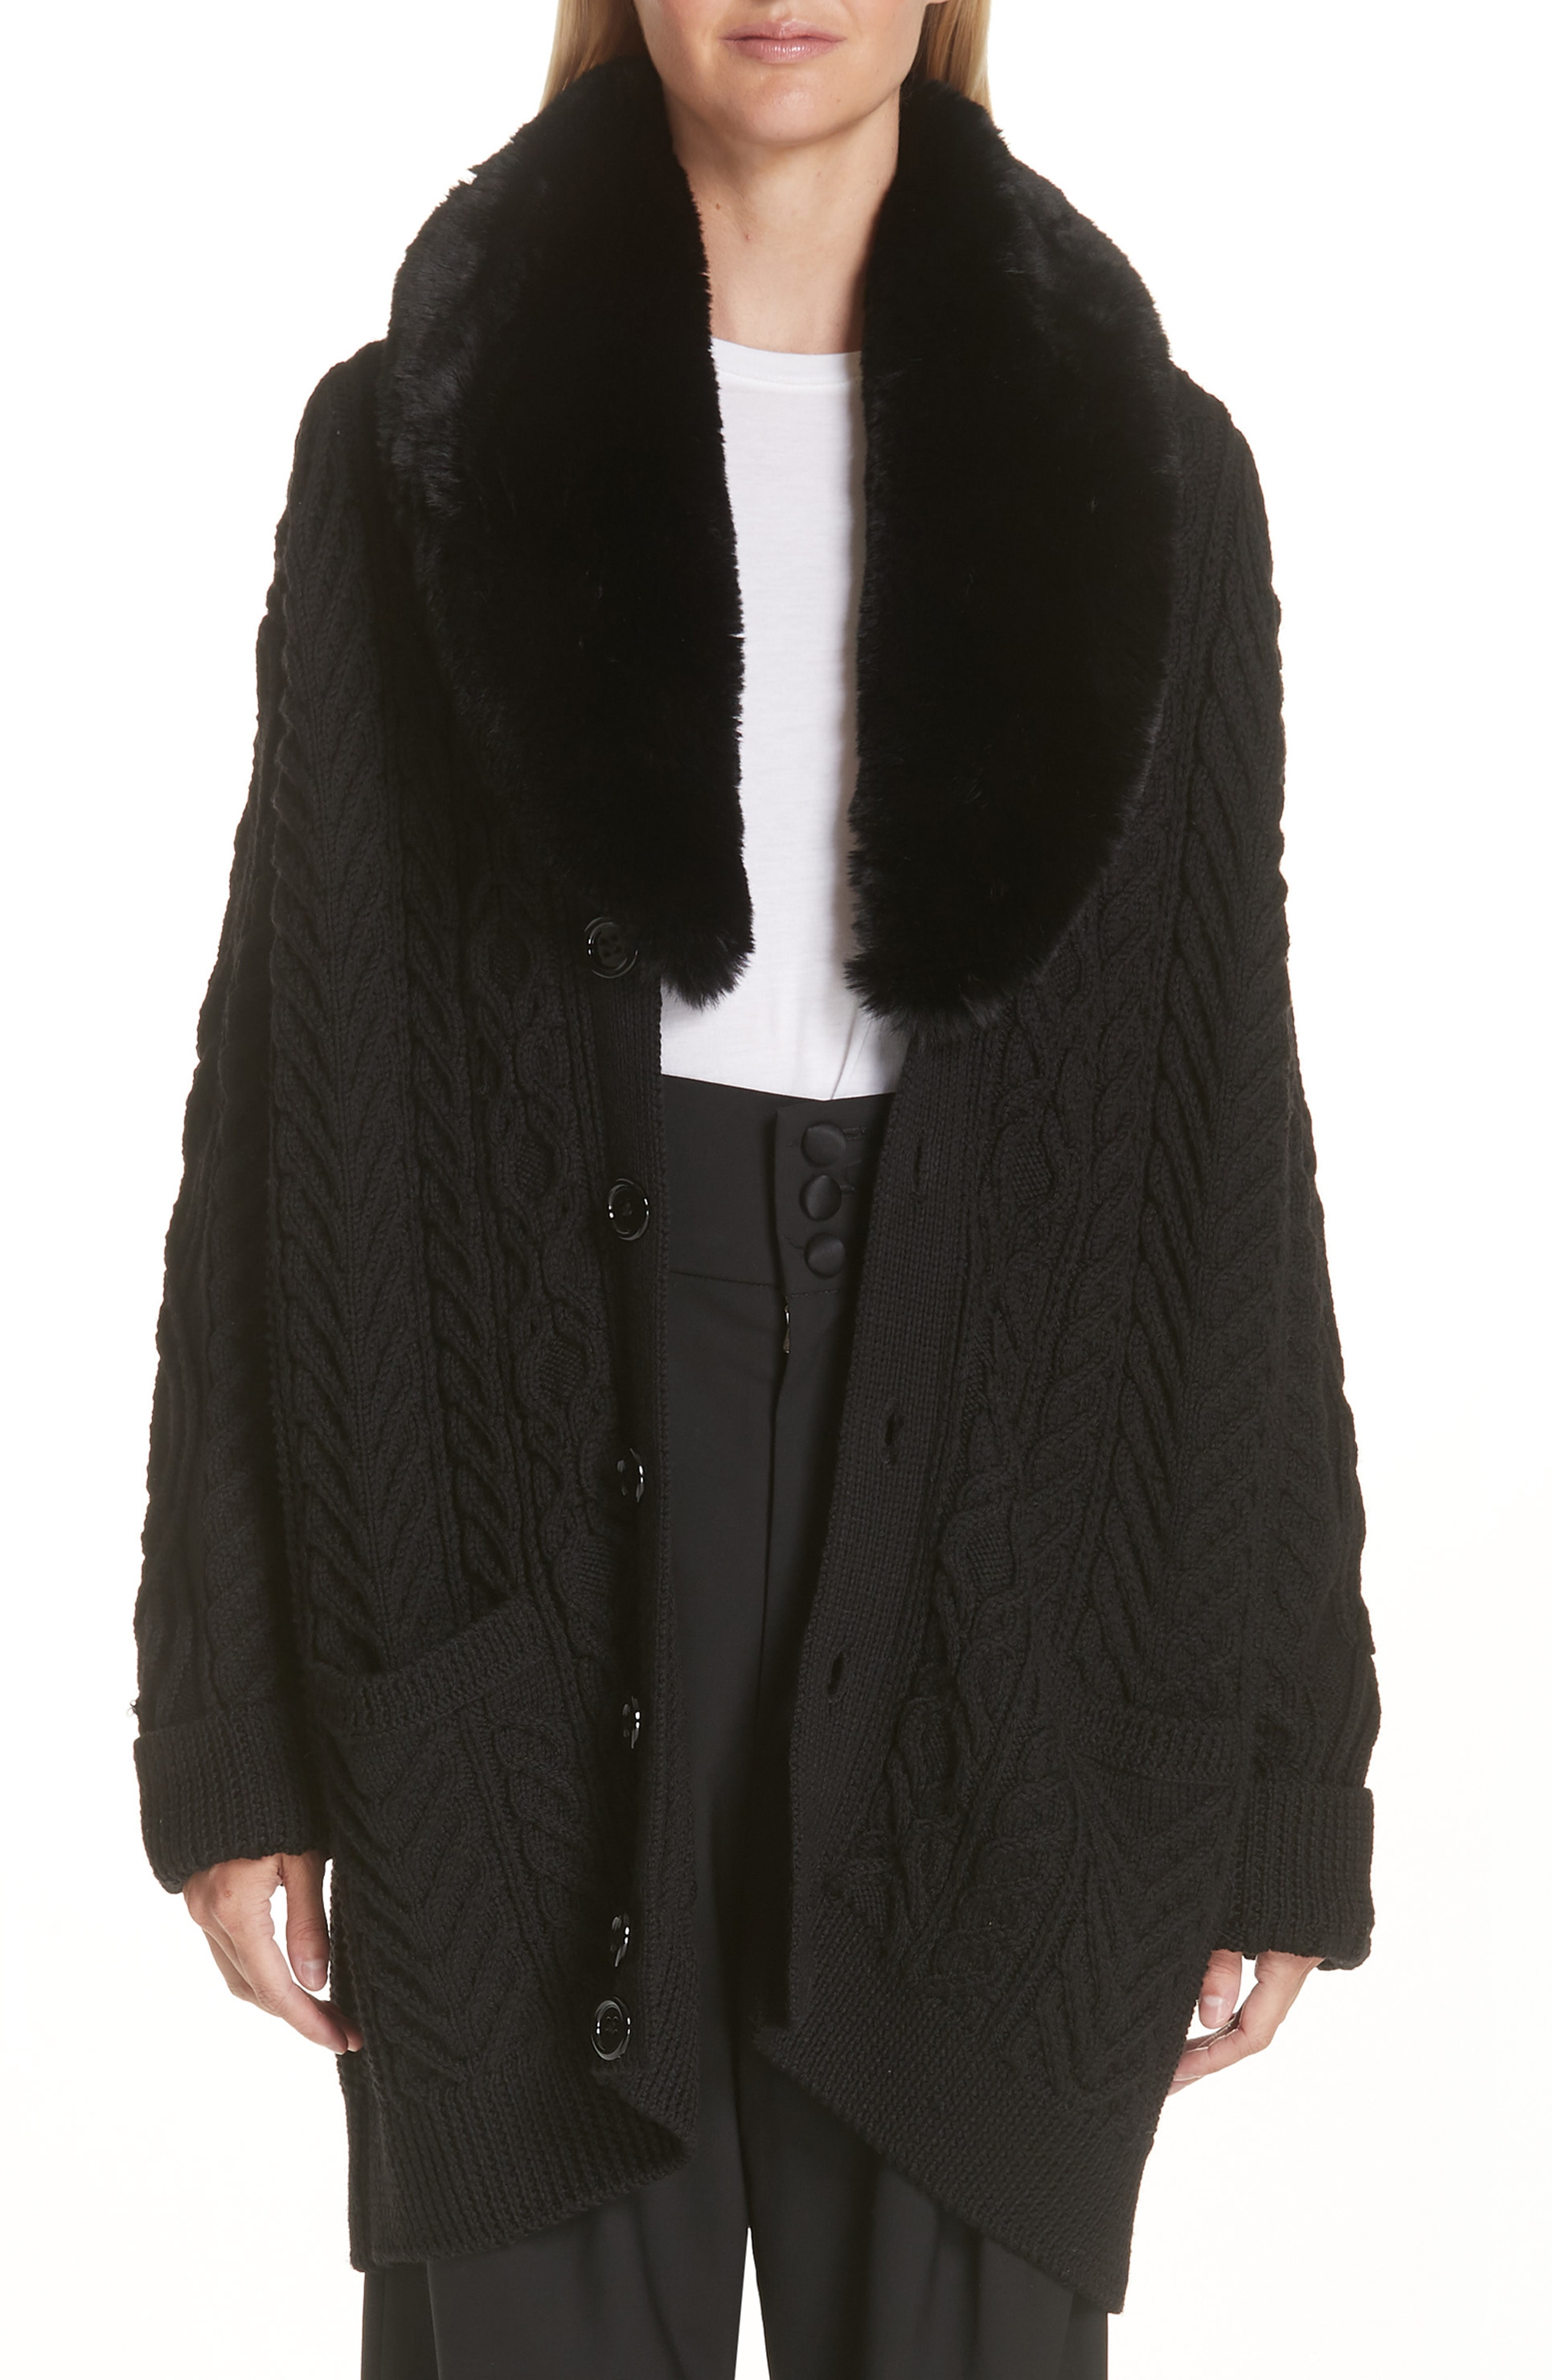 MARC JACOBS Wool Cardigan with Removable Faux Fur Collar